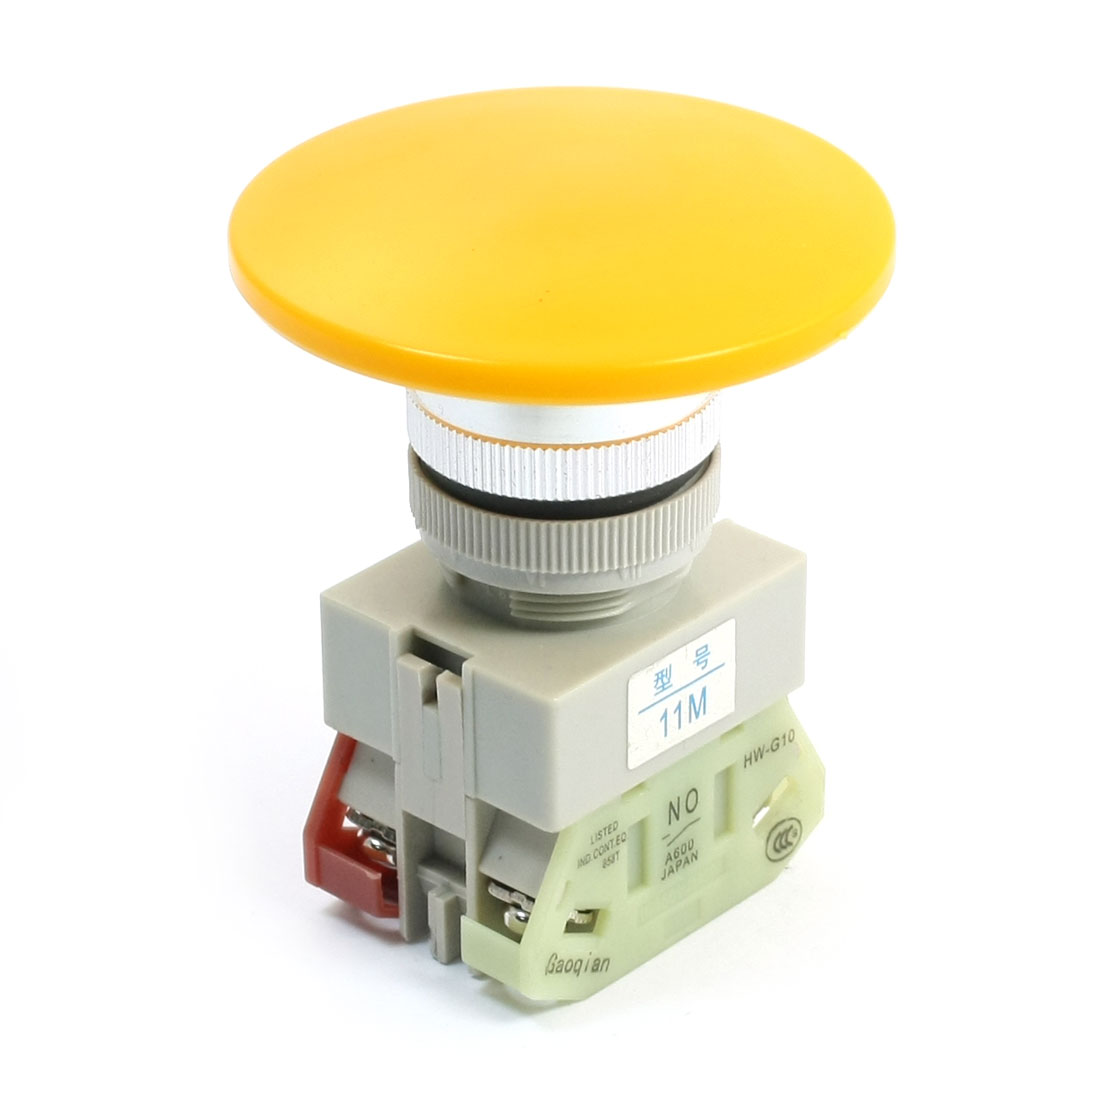 660V 10A DPST Momentary Yellow Mushroom Head Push Button Pushbutton Switch